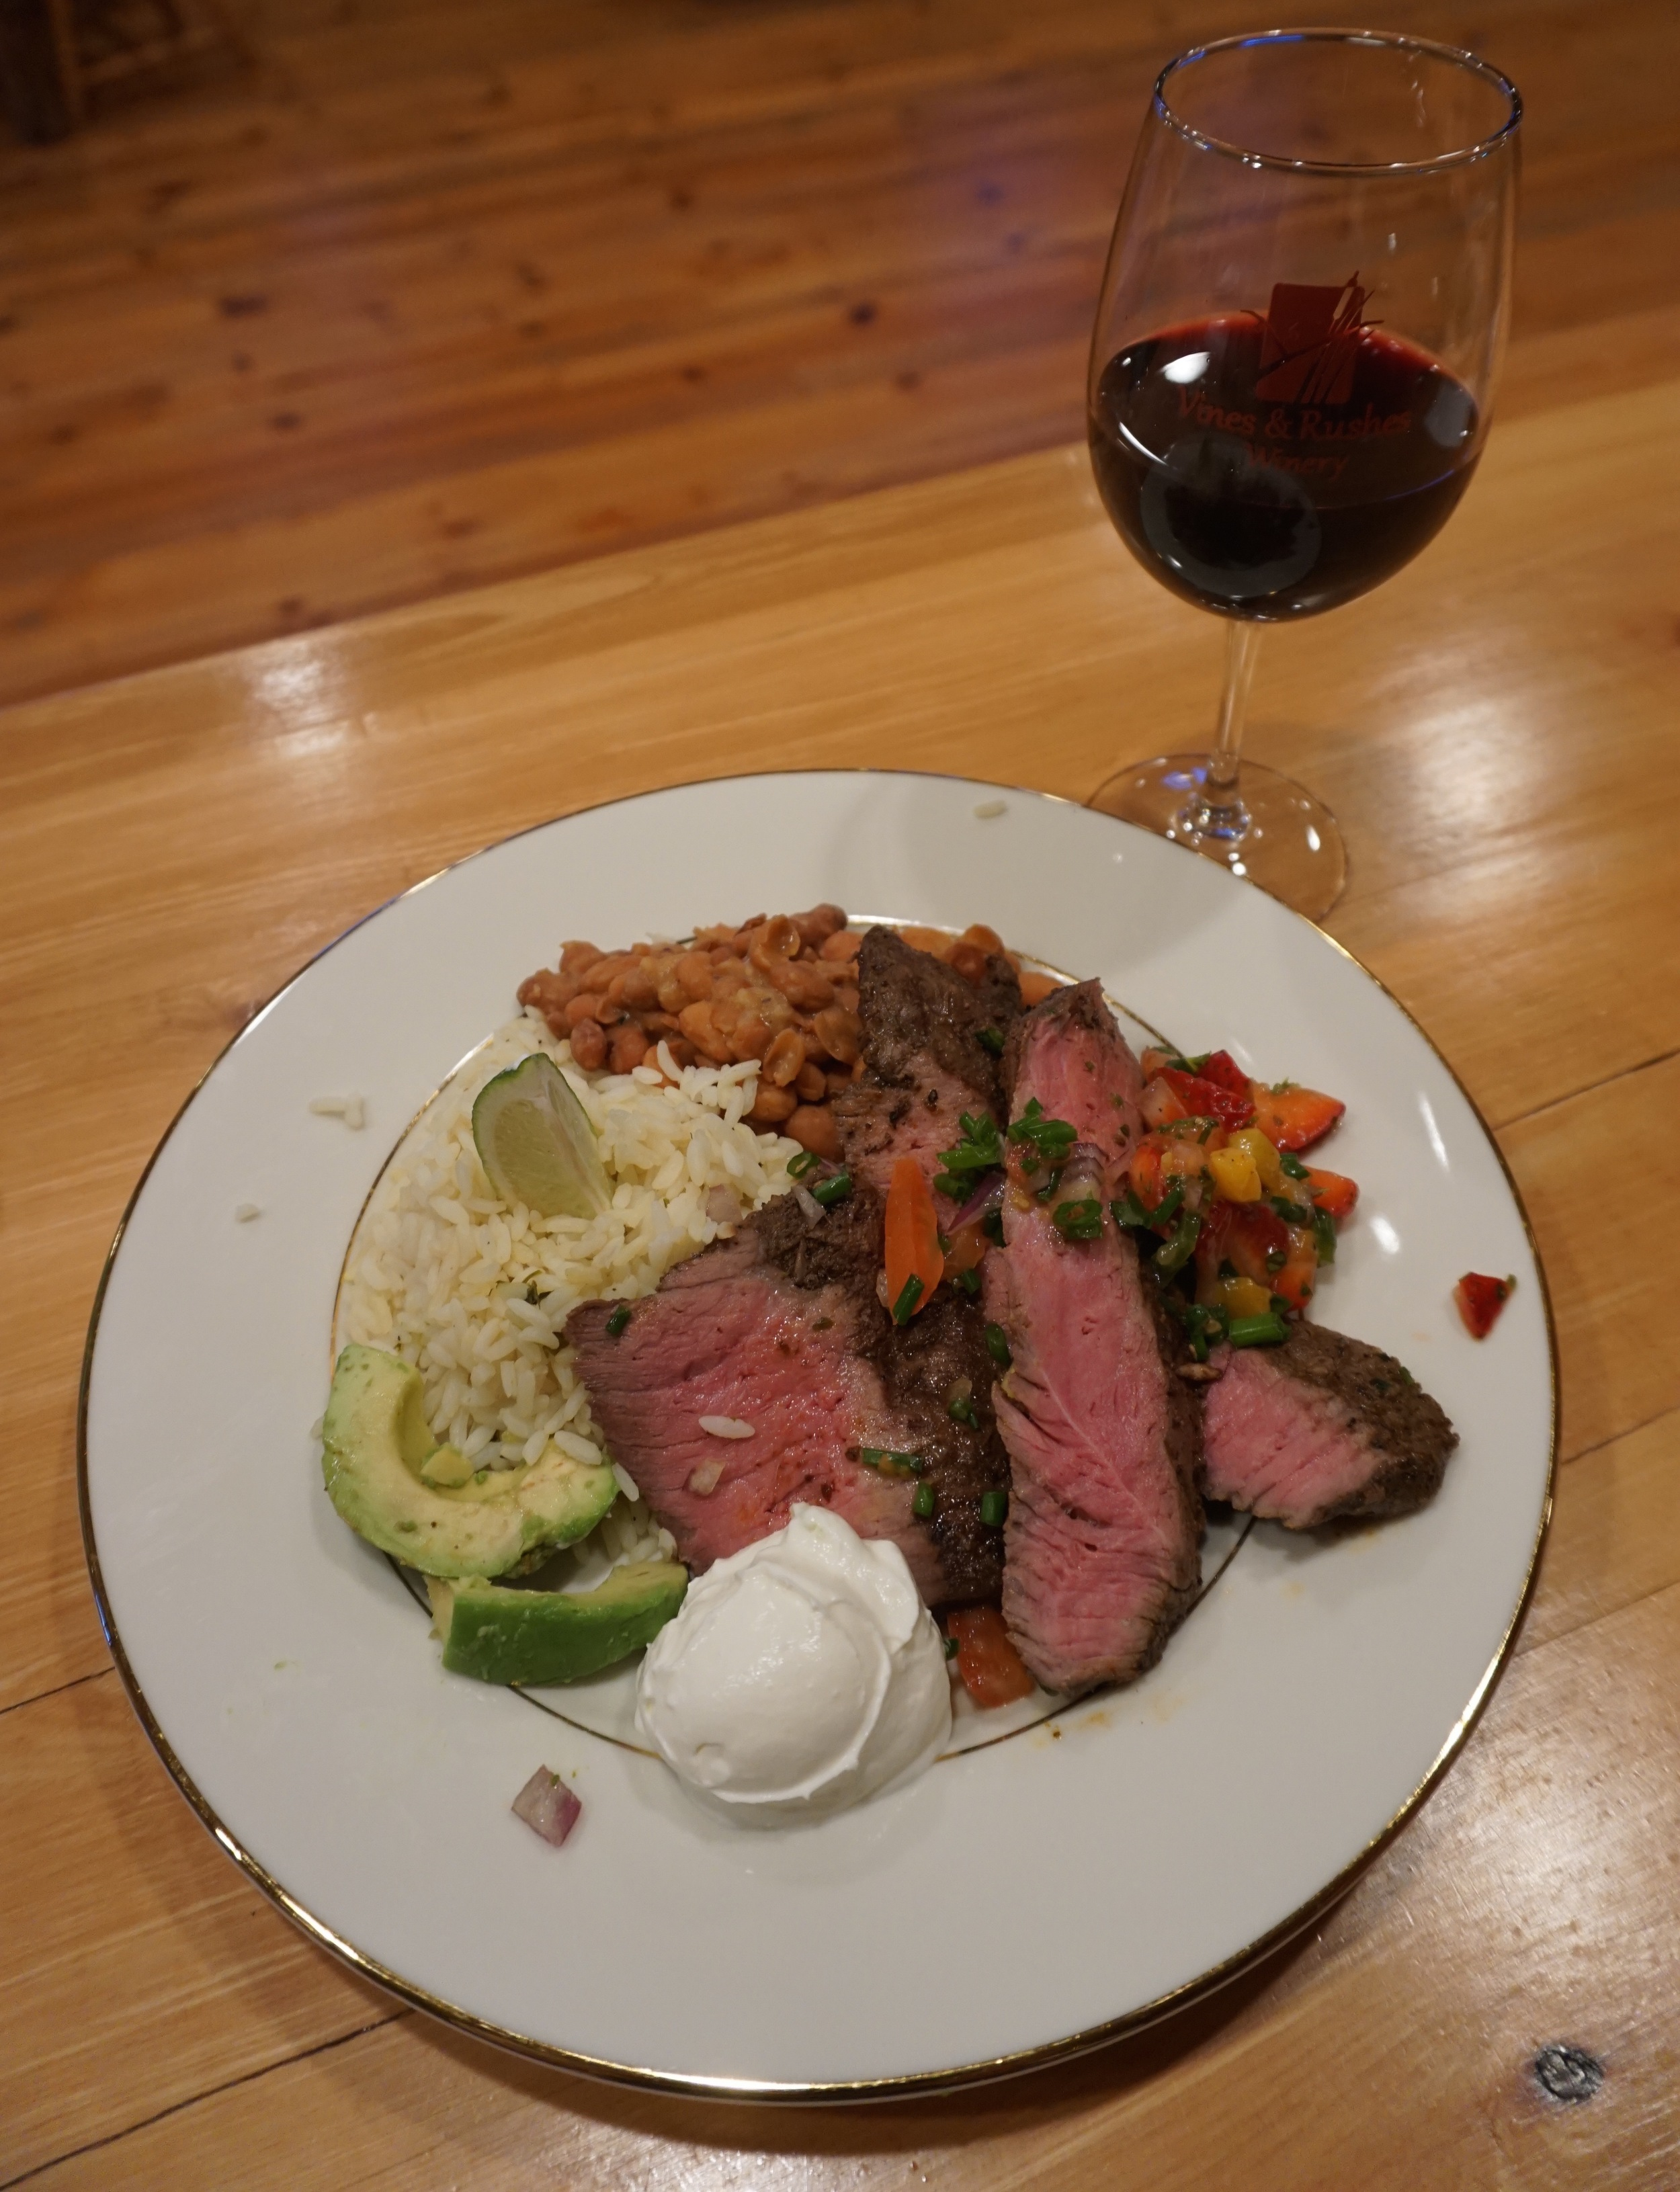 Here is an example of pairing from our May dinner featuring carne asada with Sabrevois!